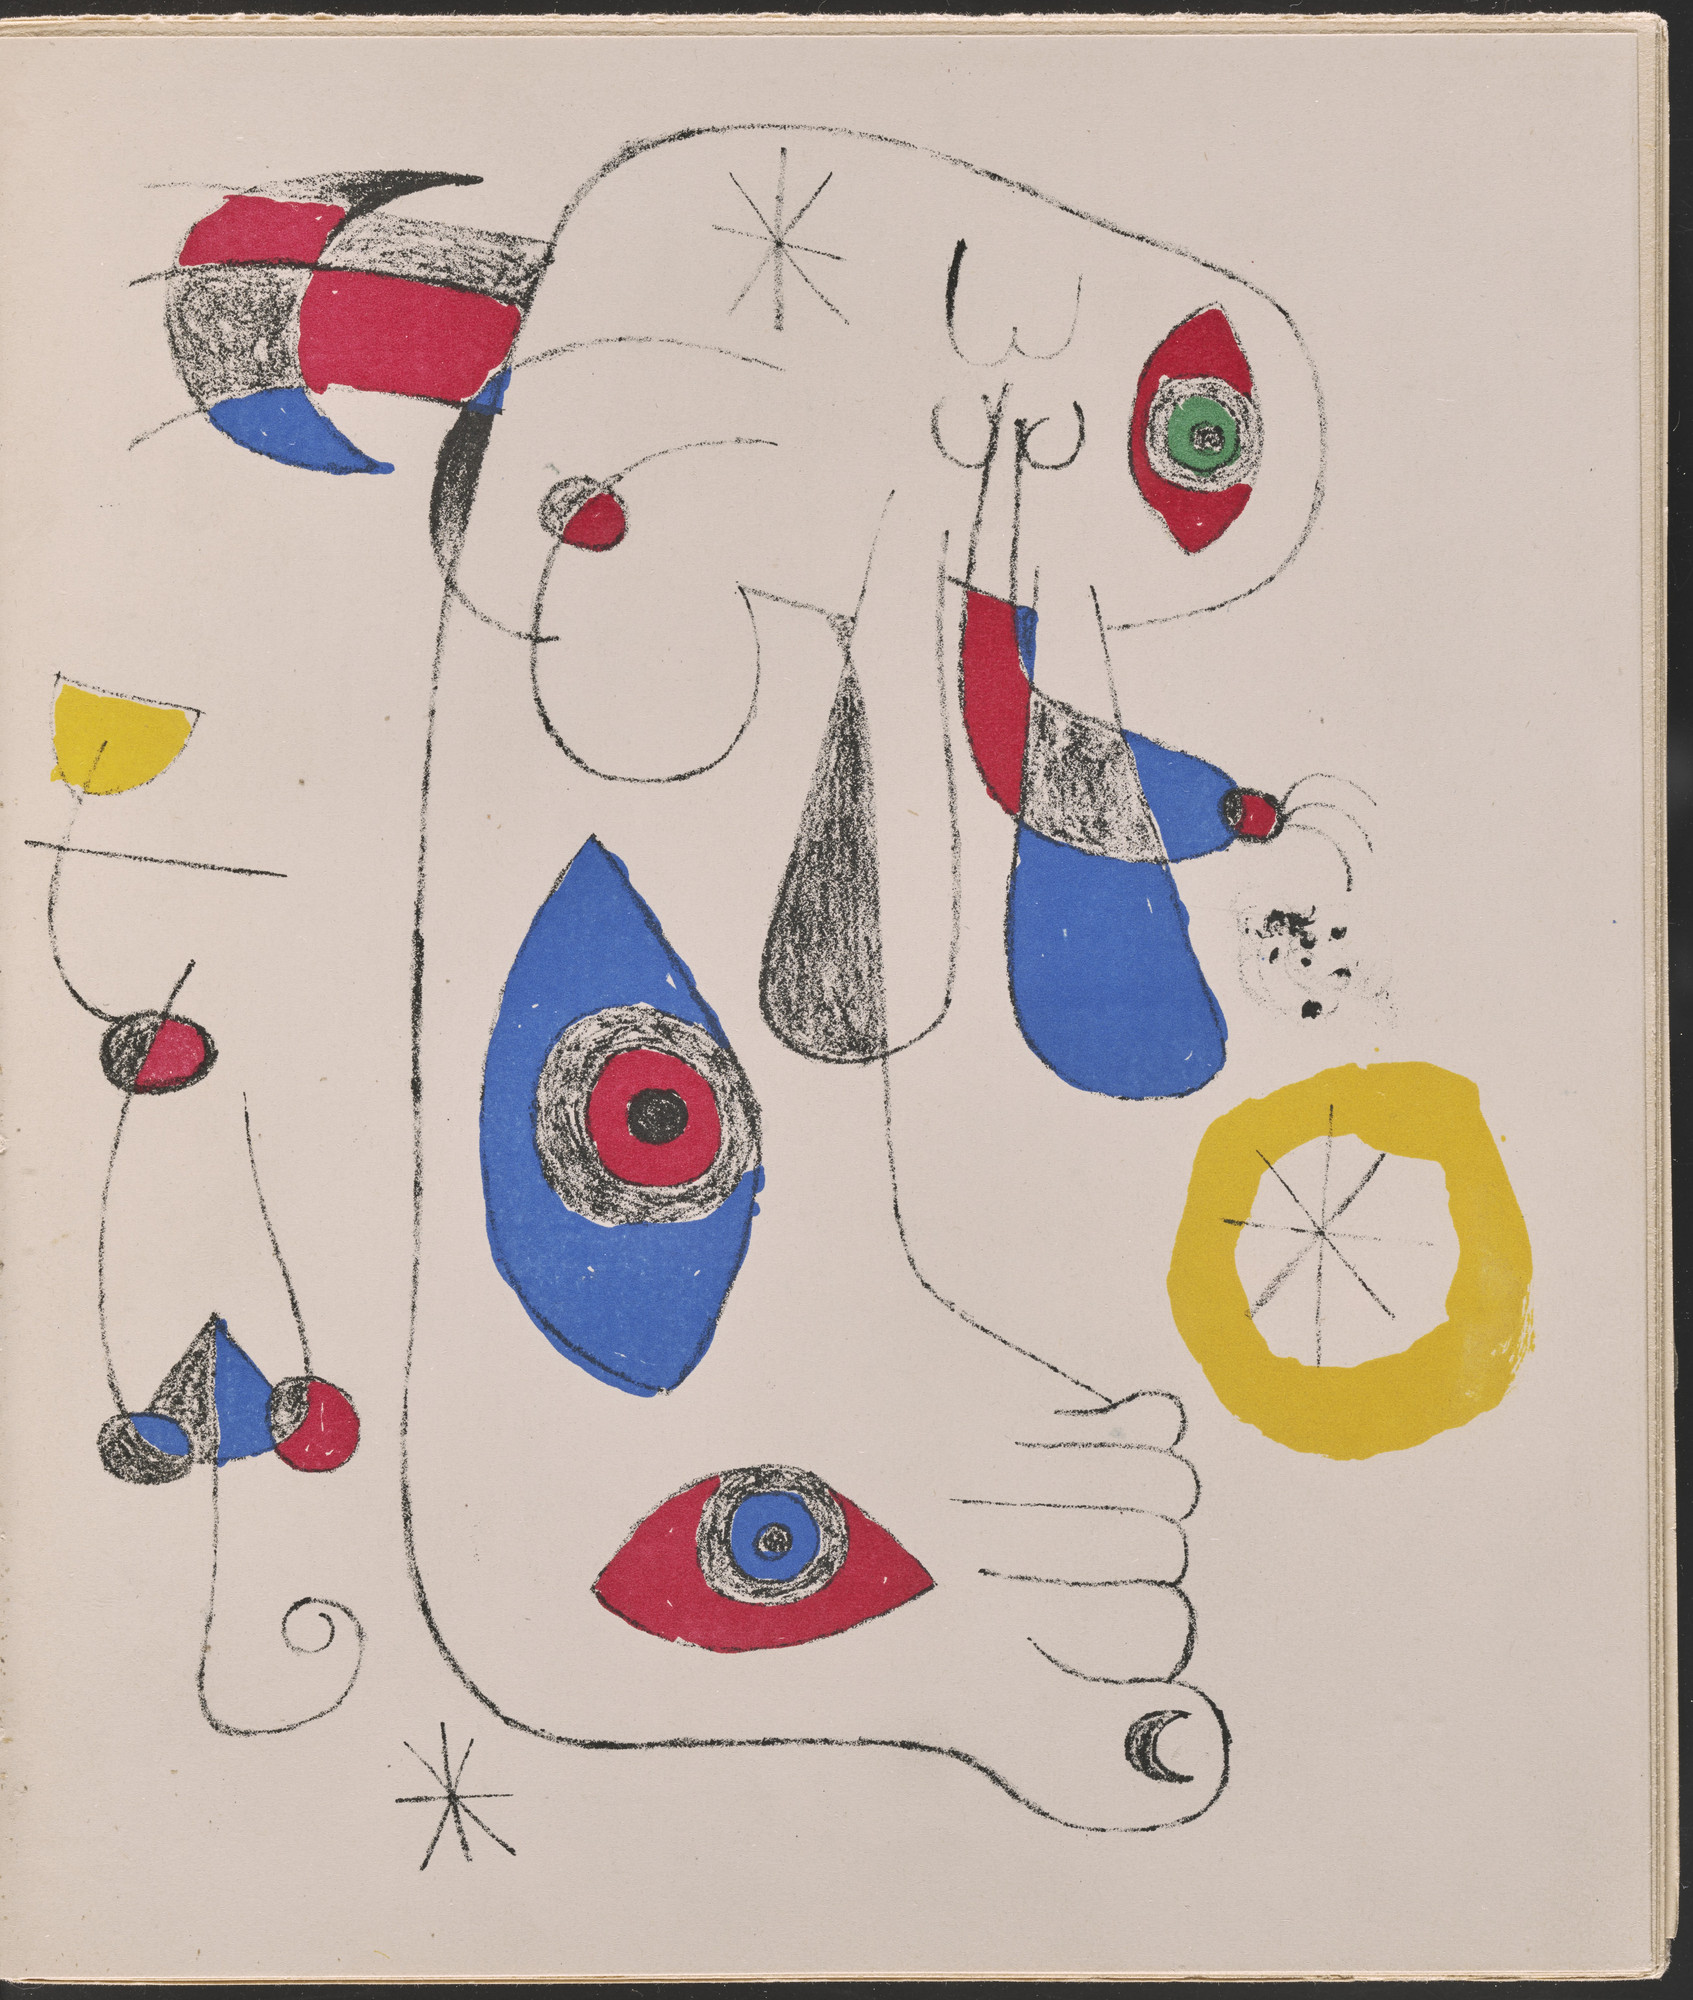 Joan Miró. Frontispiece from Le Surréalisme en 1947: Exposition Internationale du Surréalisme. 1947